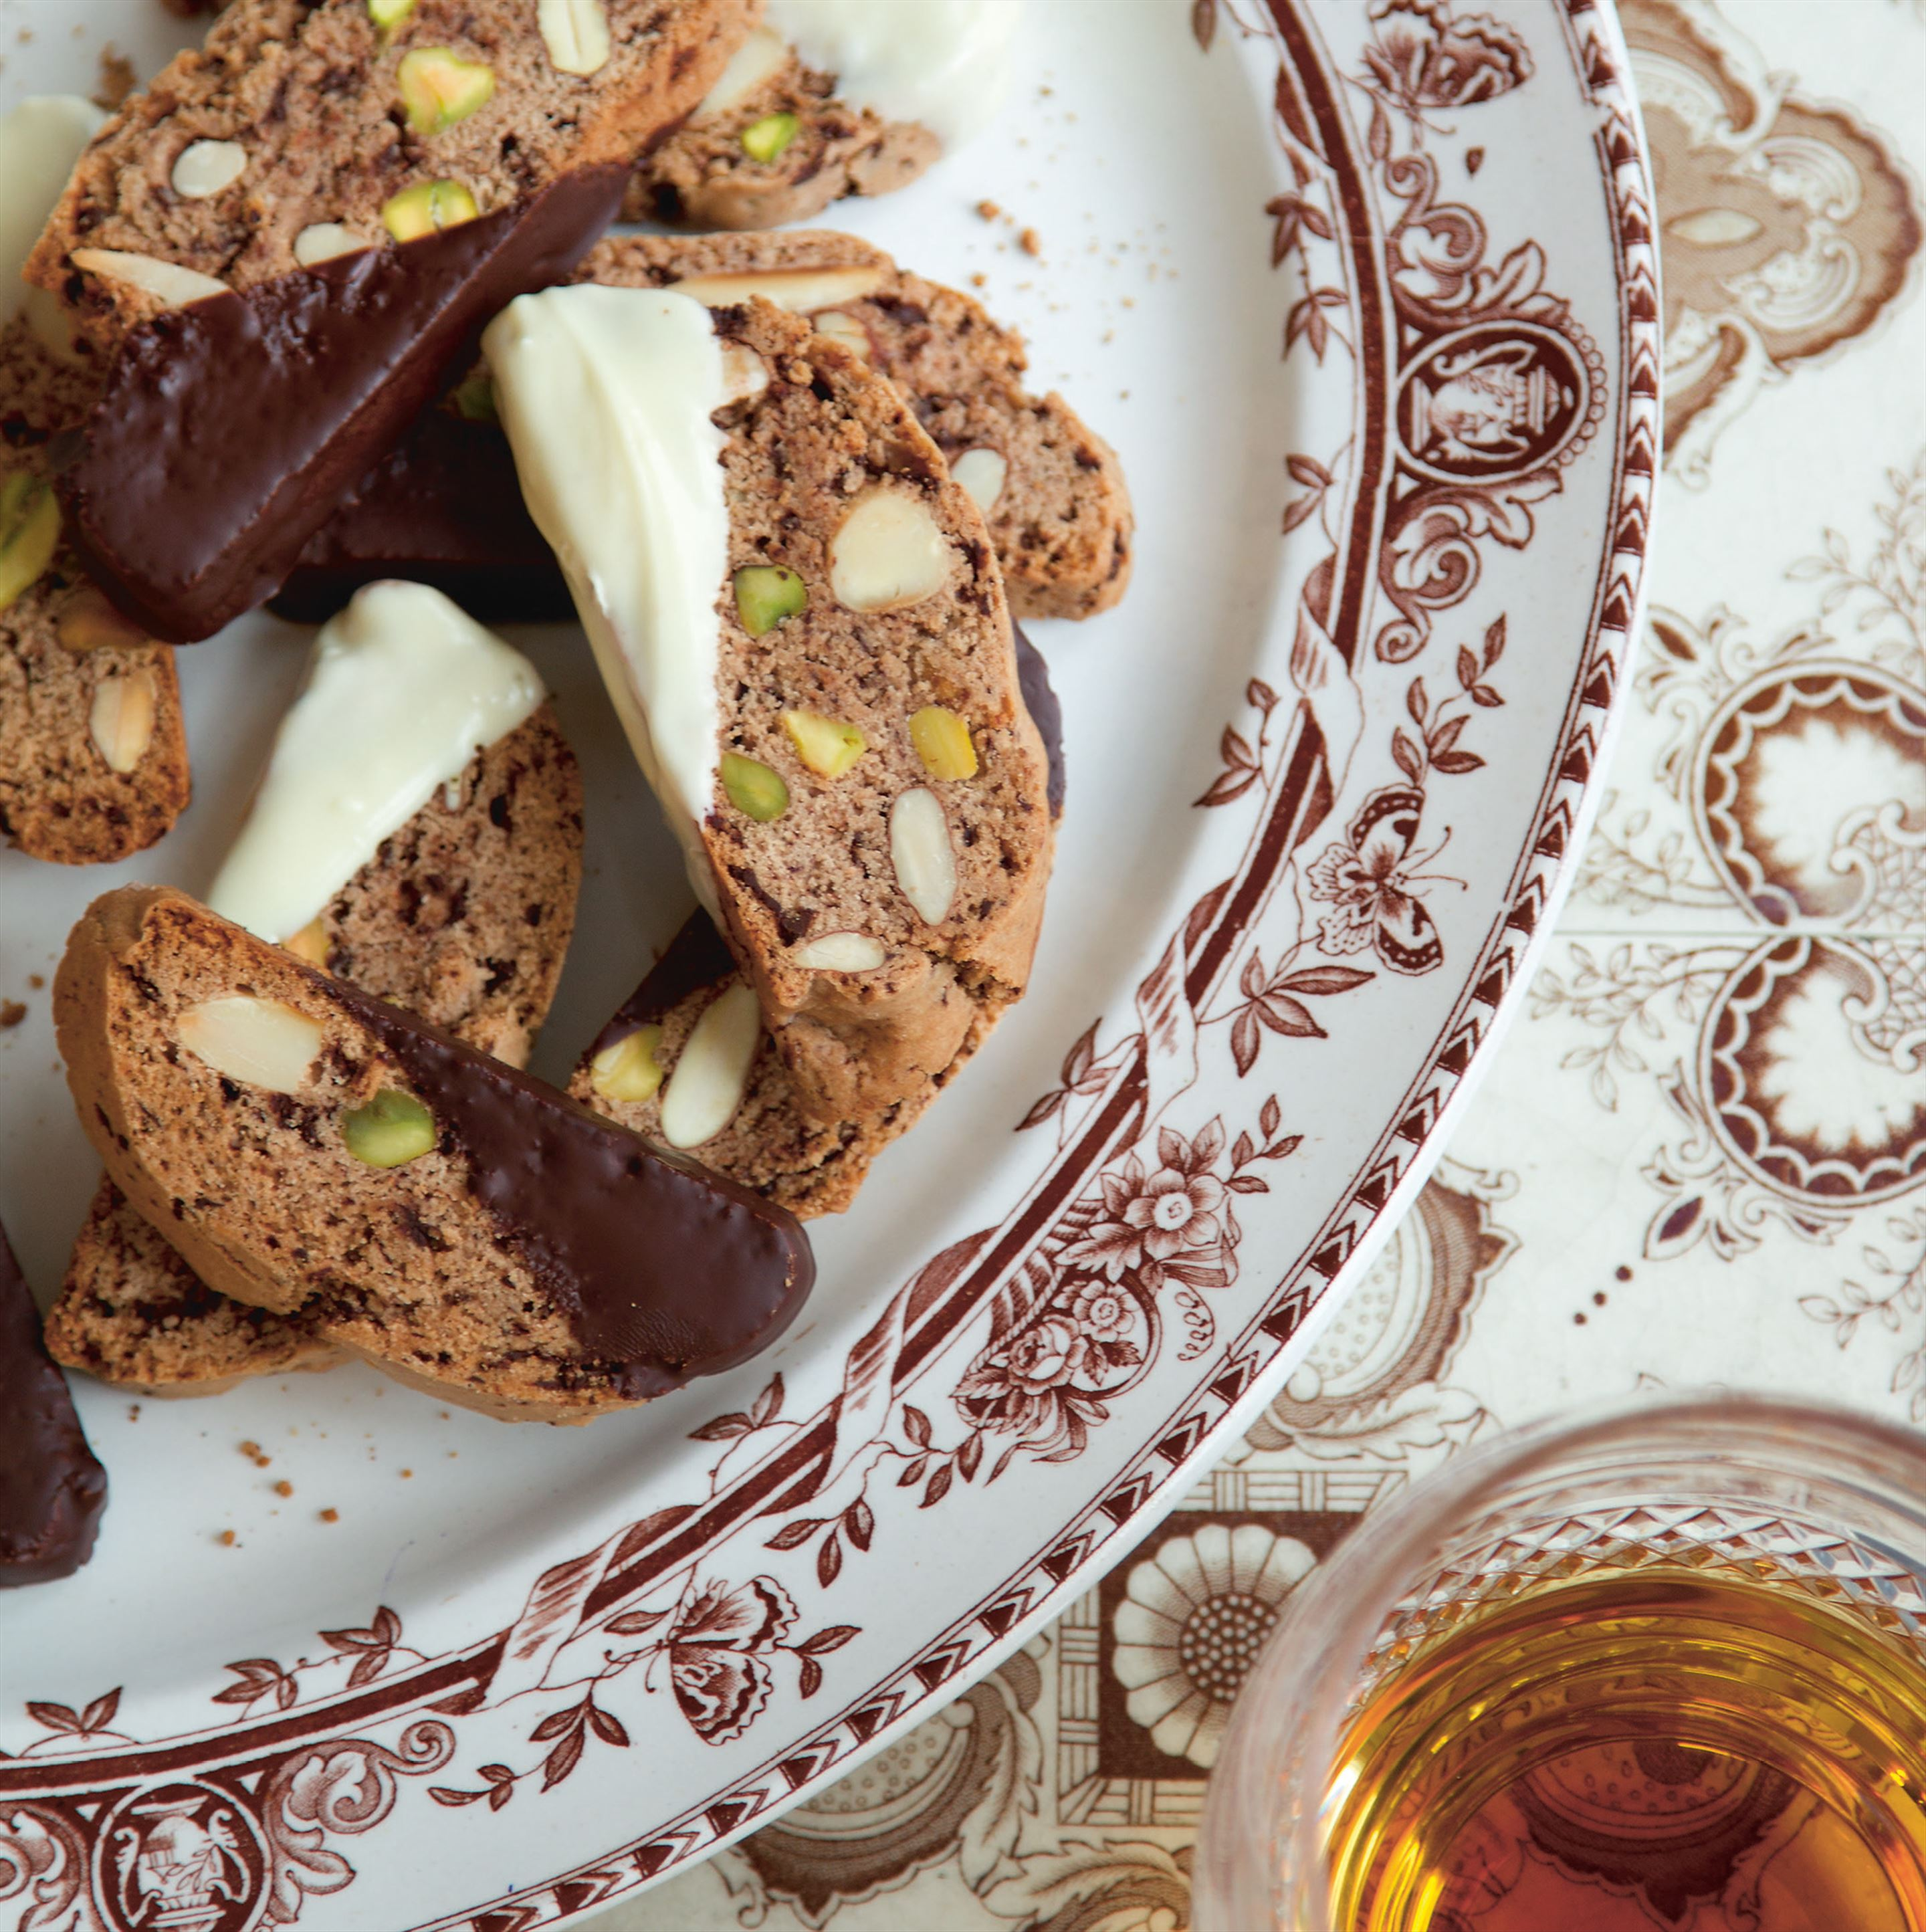 Pistachio and almond cantuccini